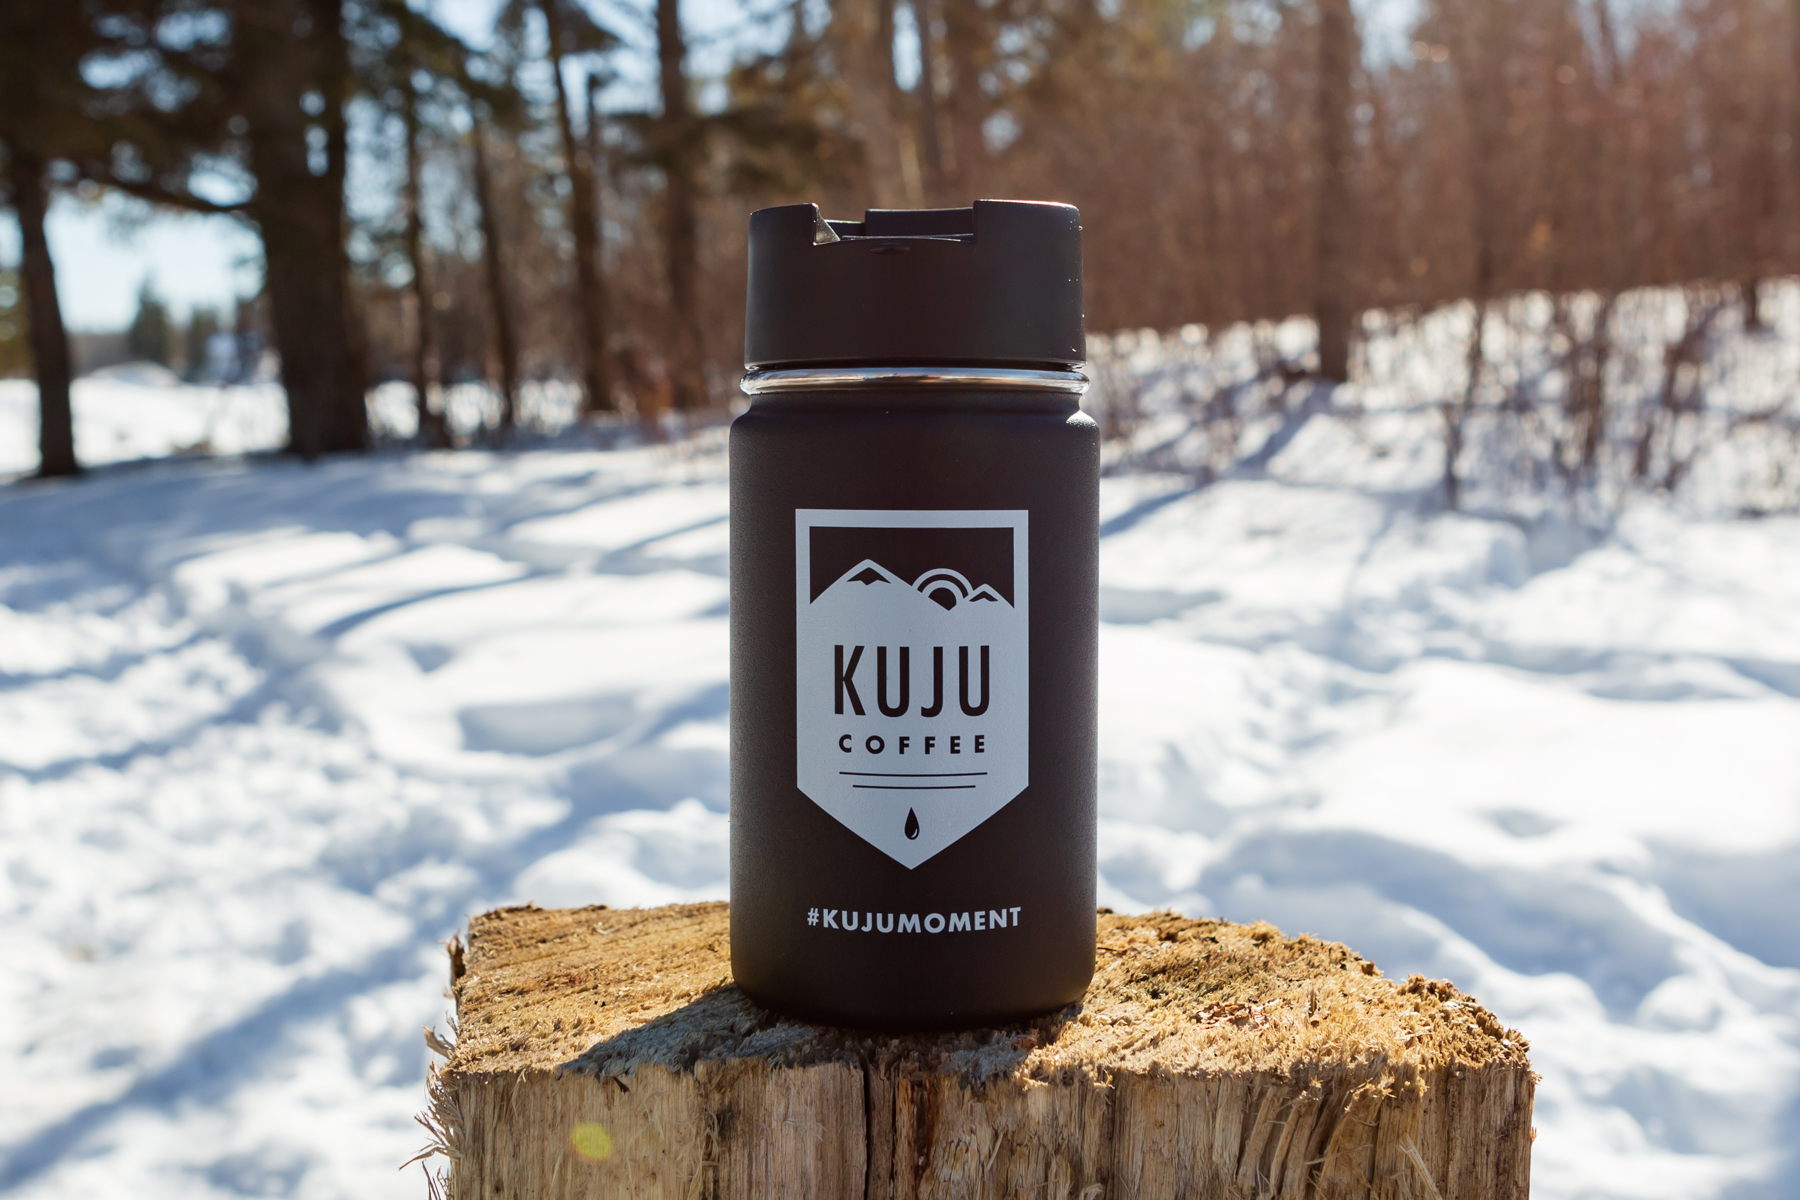 Kuju Coffee Hydro Flask sitting on a log